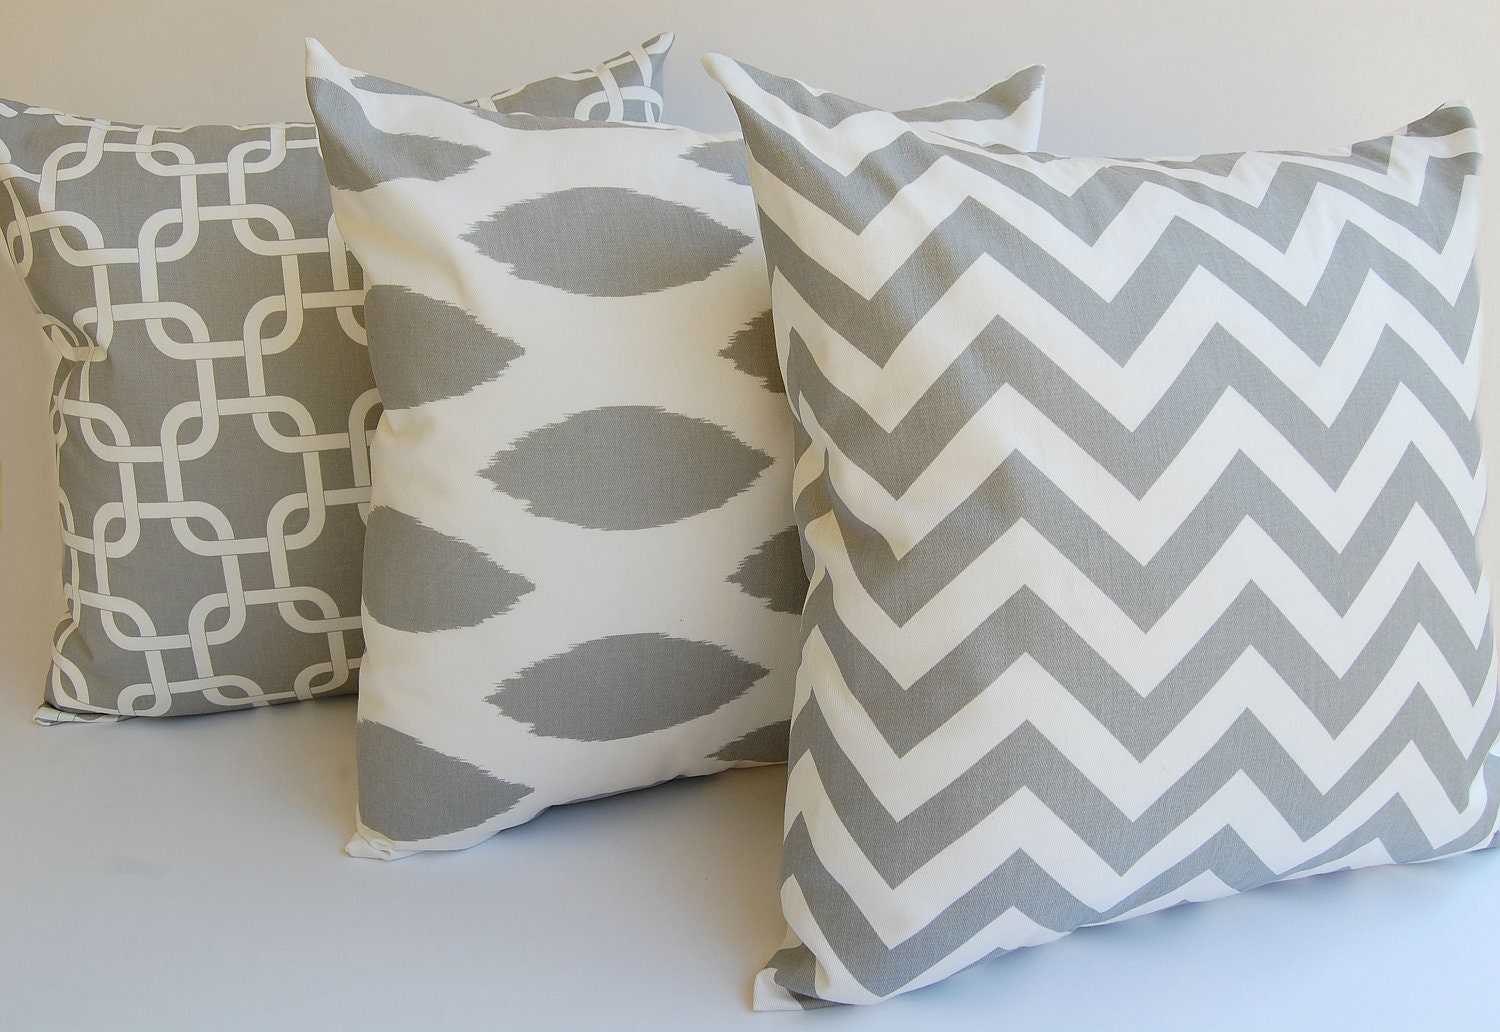 Decorative Pillows For Couch Etsy : Gray Pillow Throw Pillows 18 x 18 Inches by ThePillowPeople